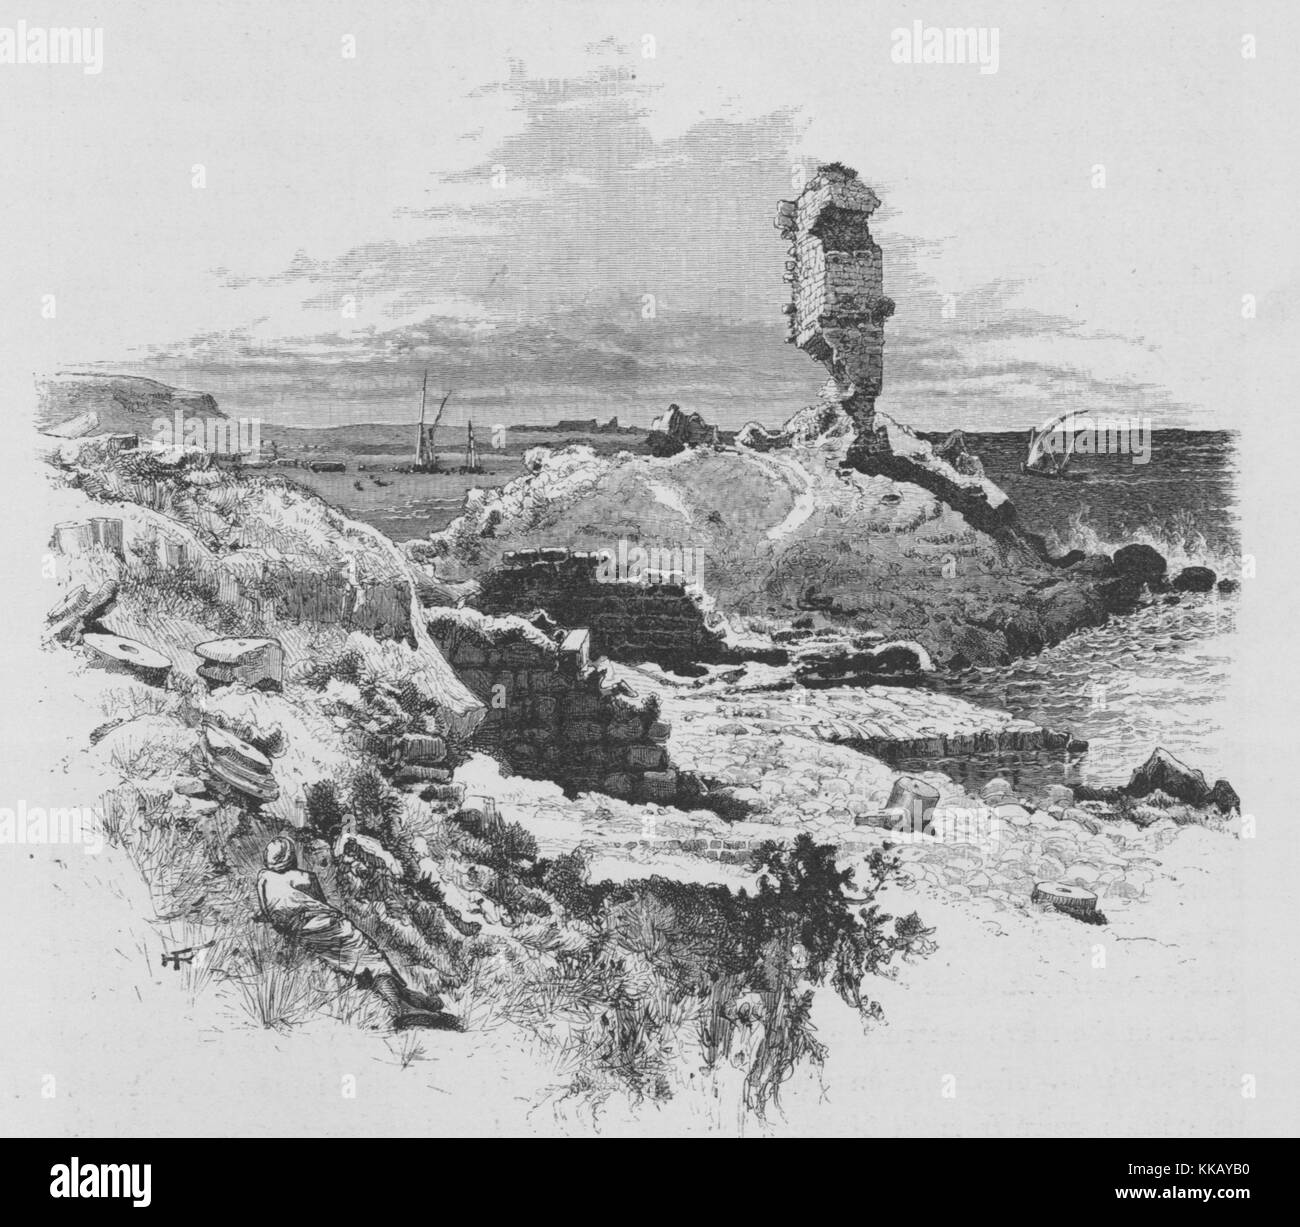 An etching that shows the remains of a fort near the coastal city of Tanturah, which is seen in the background, - Stock Image